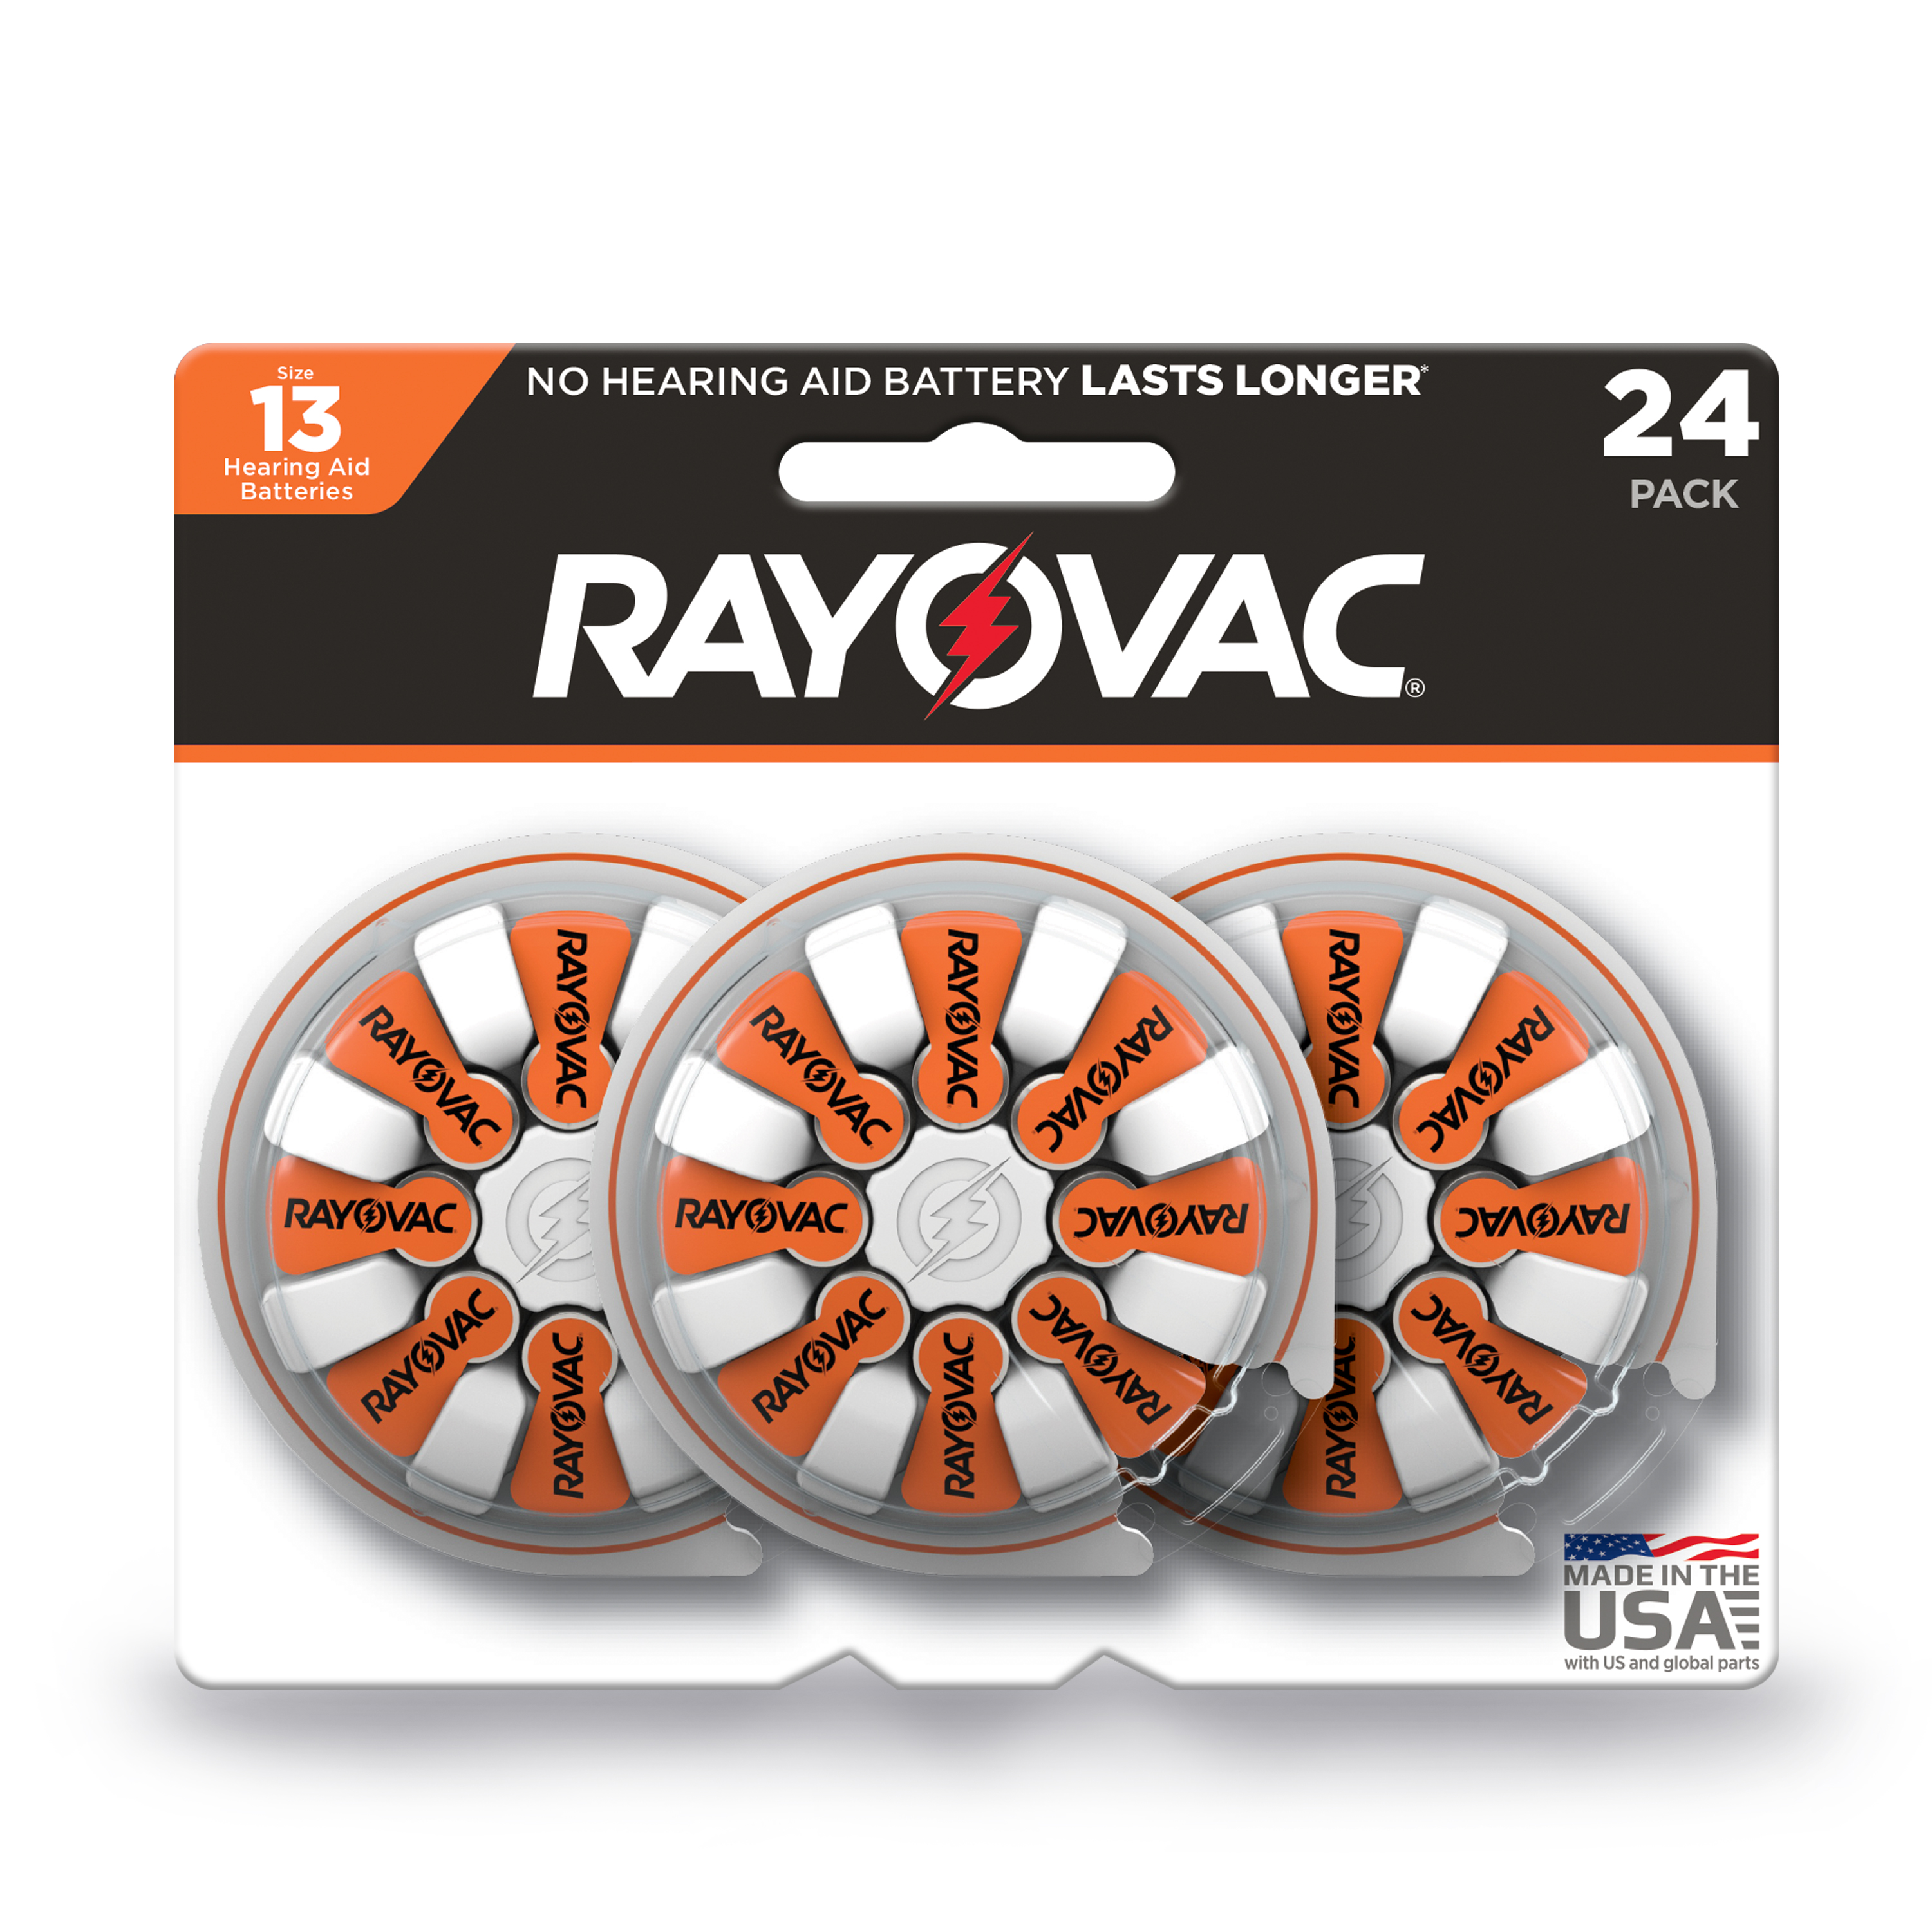 Rayovac Size 13 Hearing Aid Batteries, 24-Pack 13-24